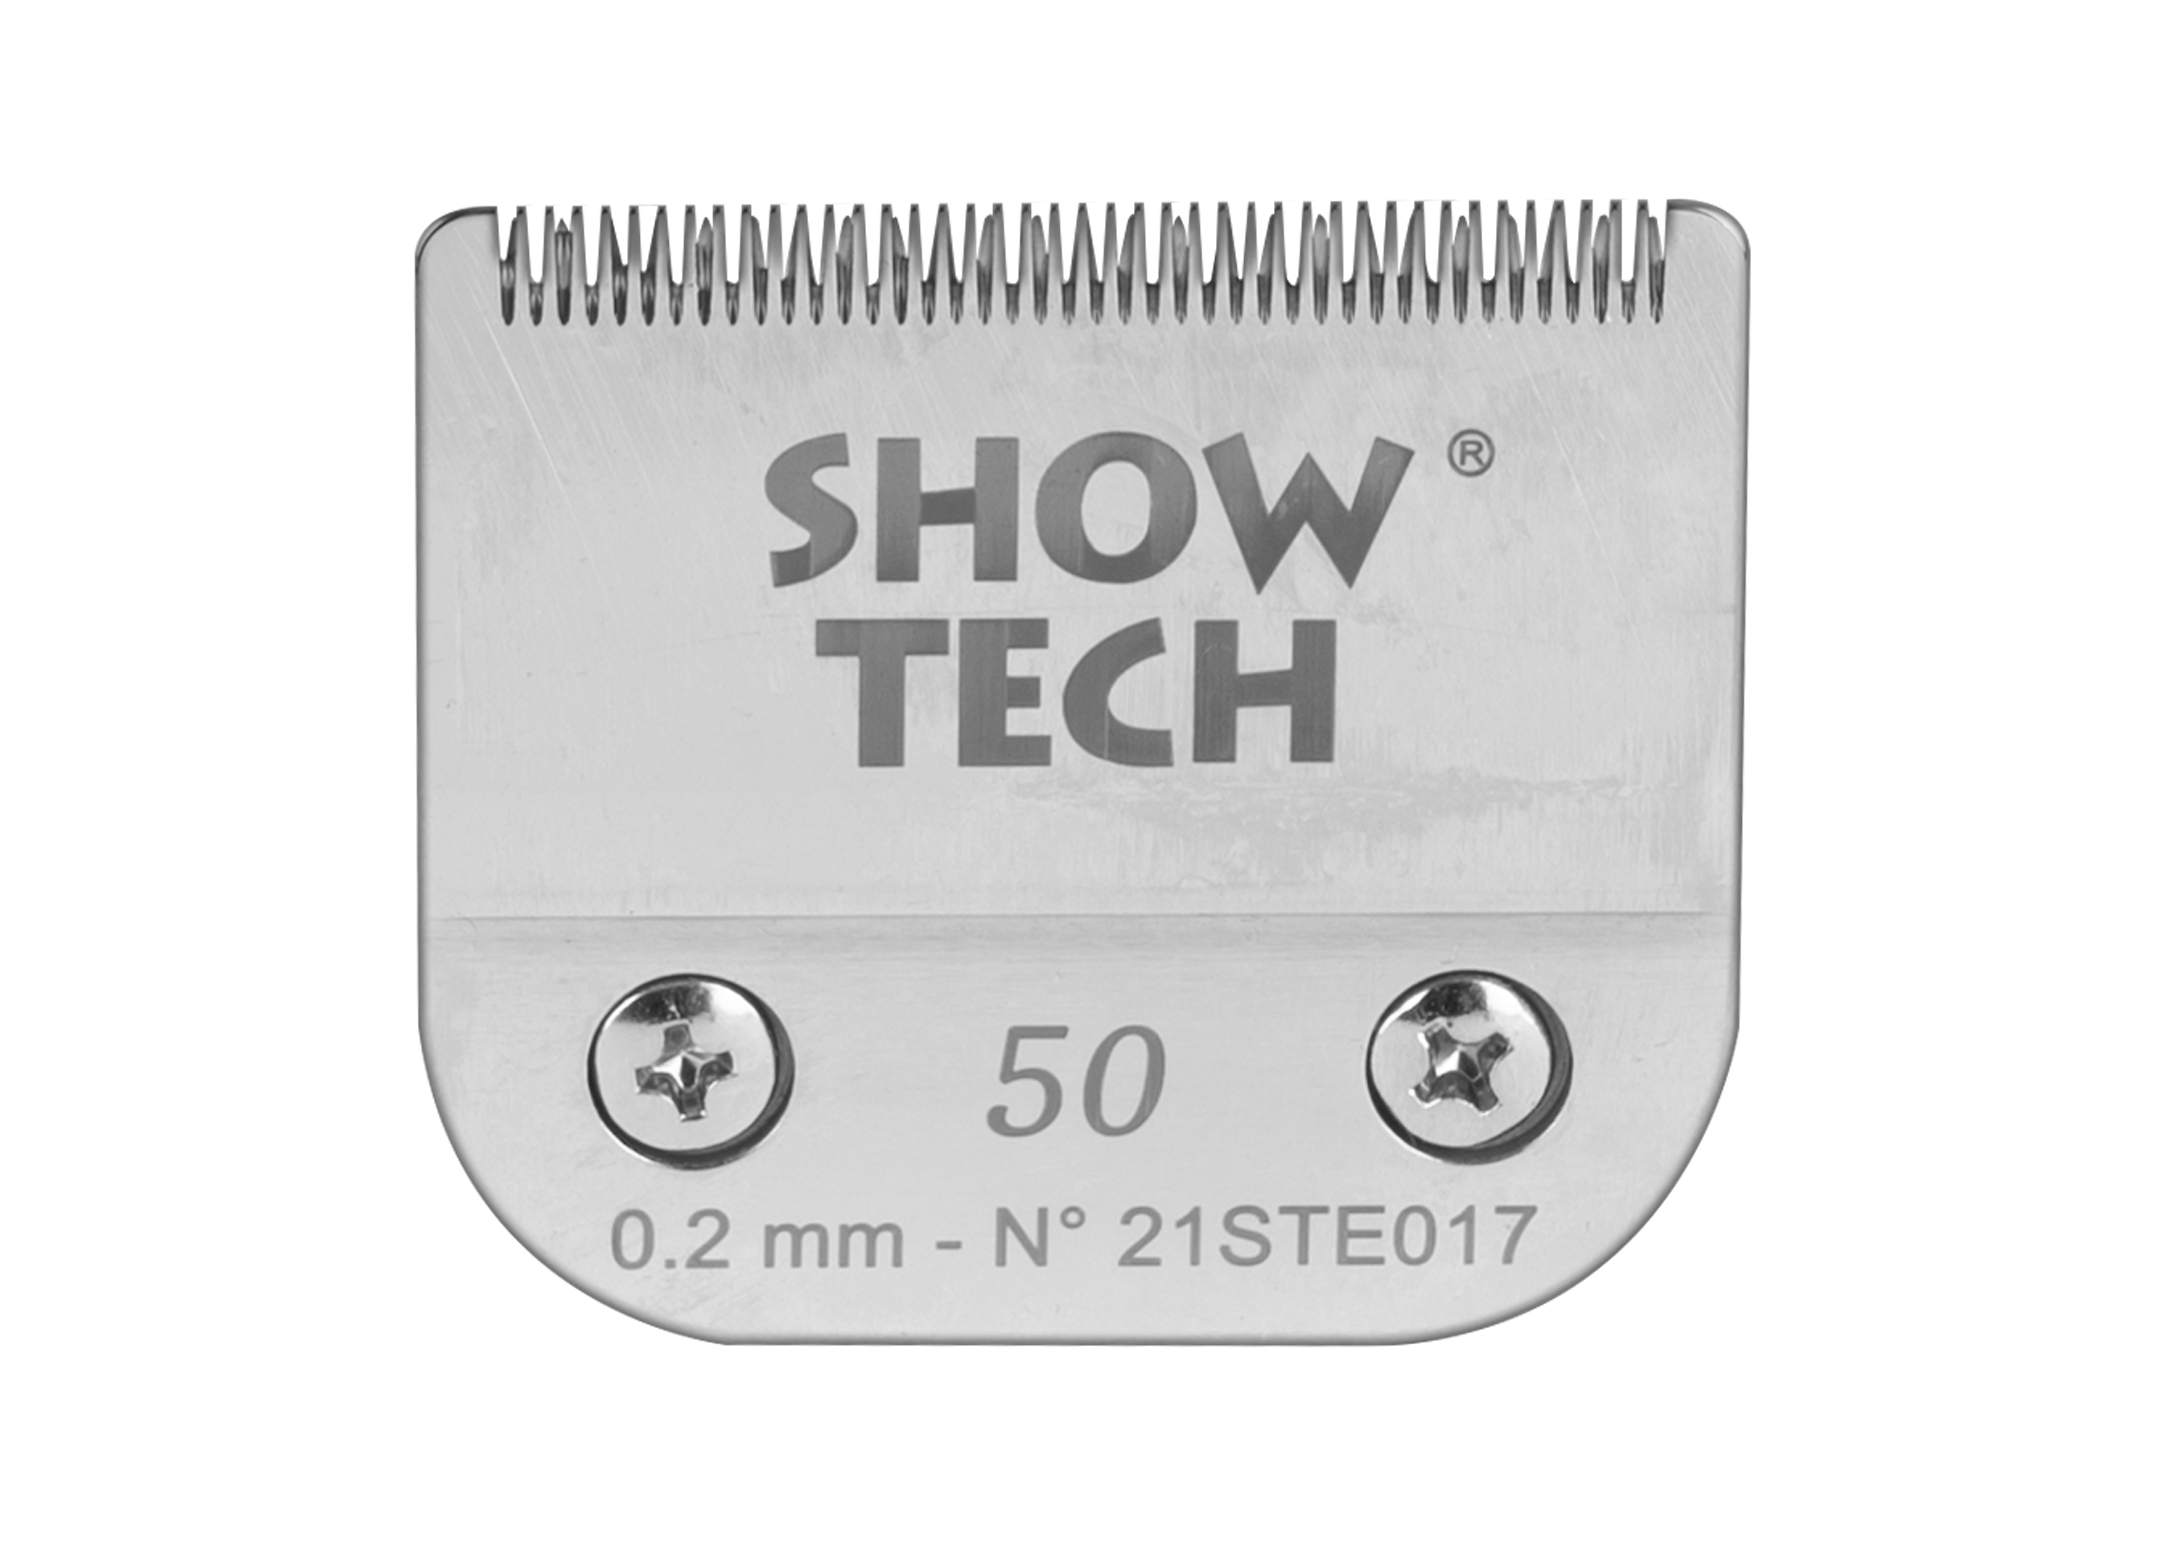 Show Tech Pro Blades snap-on Scheerkop #50 - 0,2mm